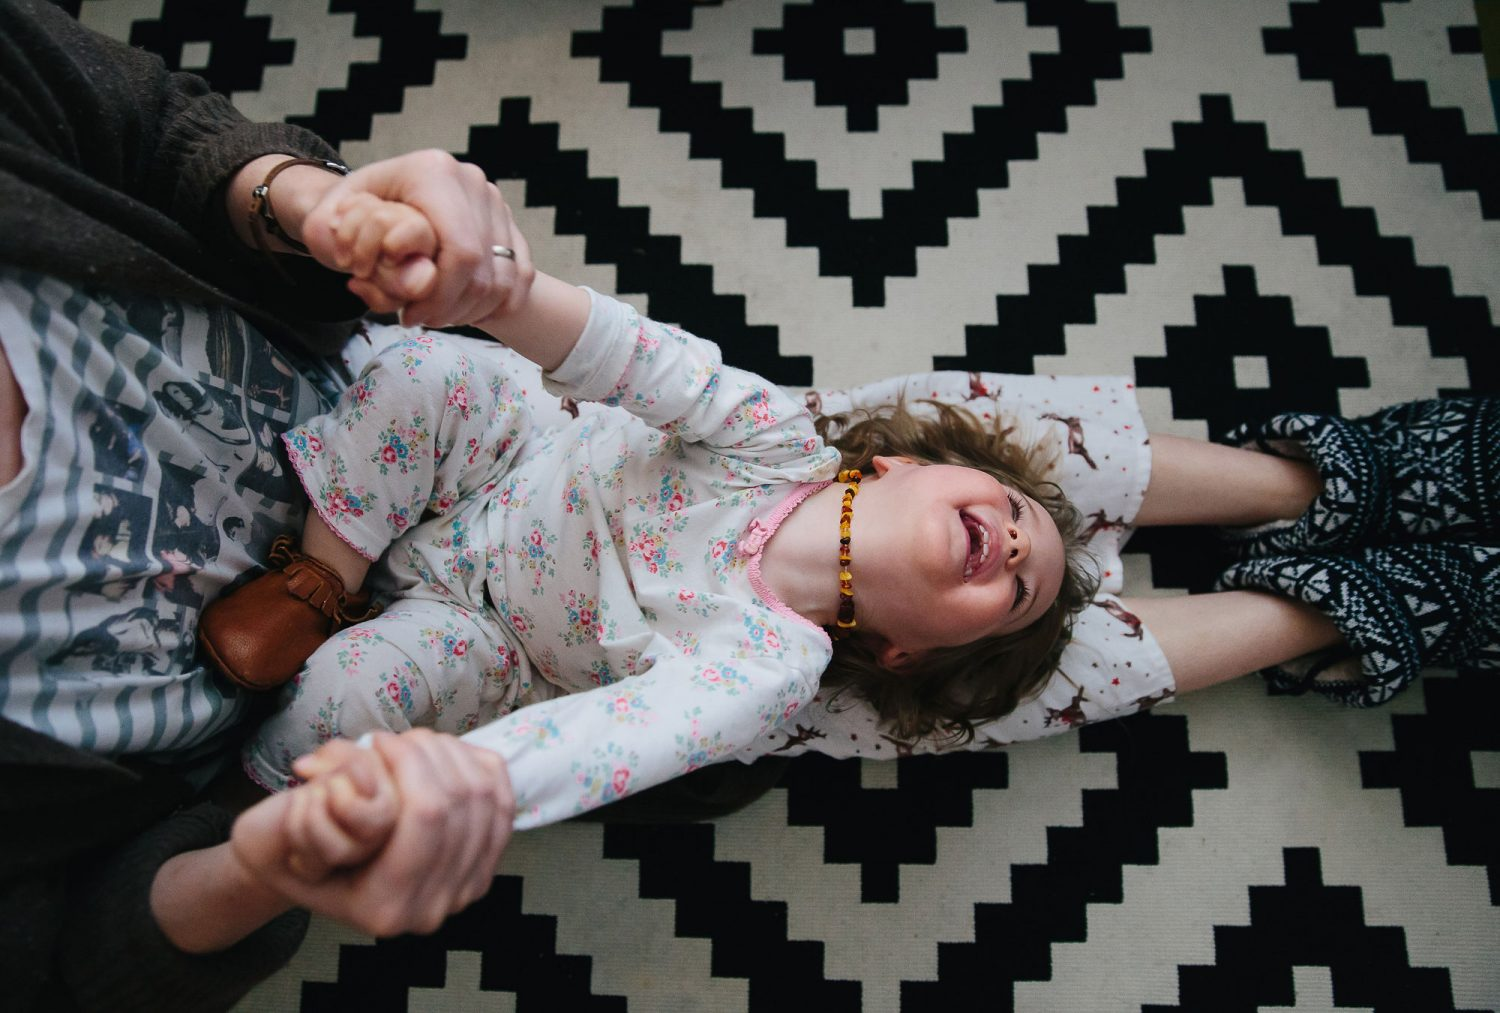 mum and daughter playing and laughing on rug